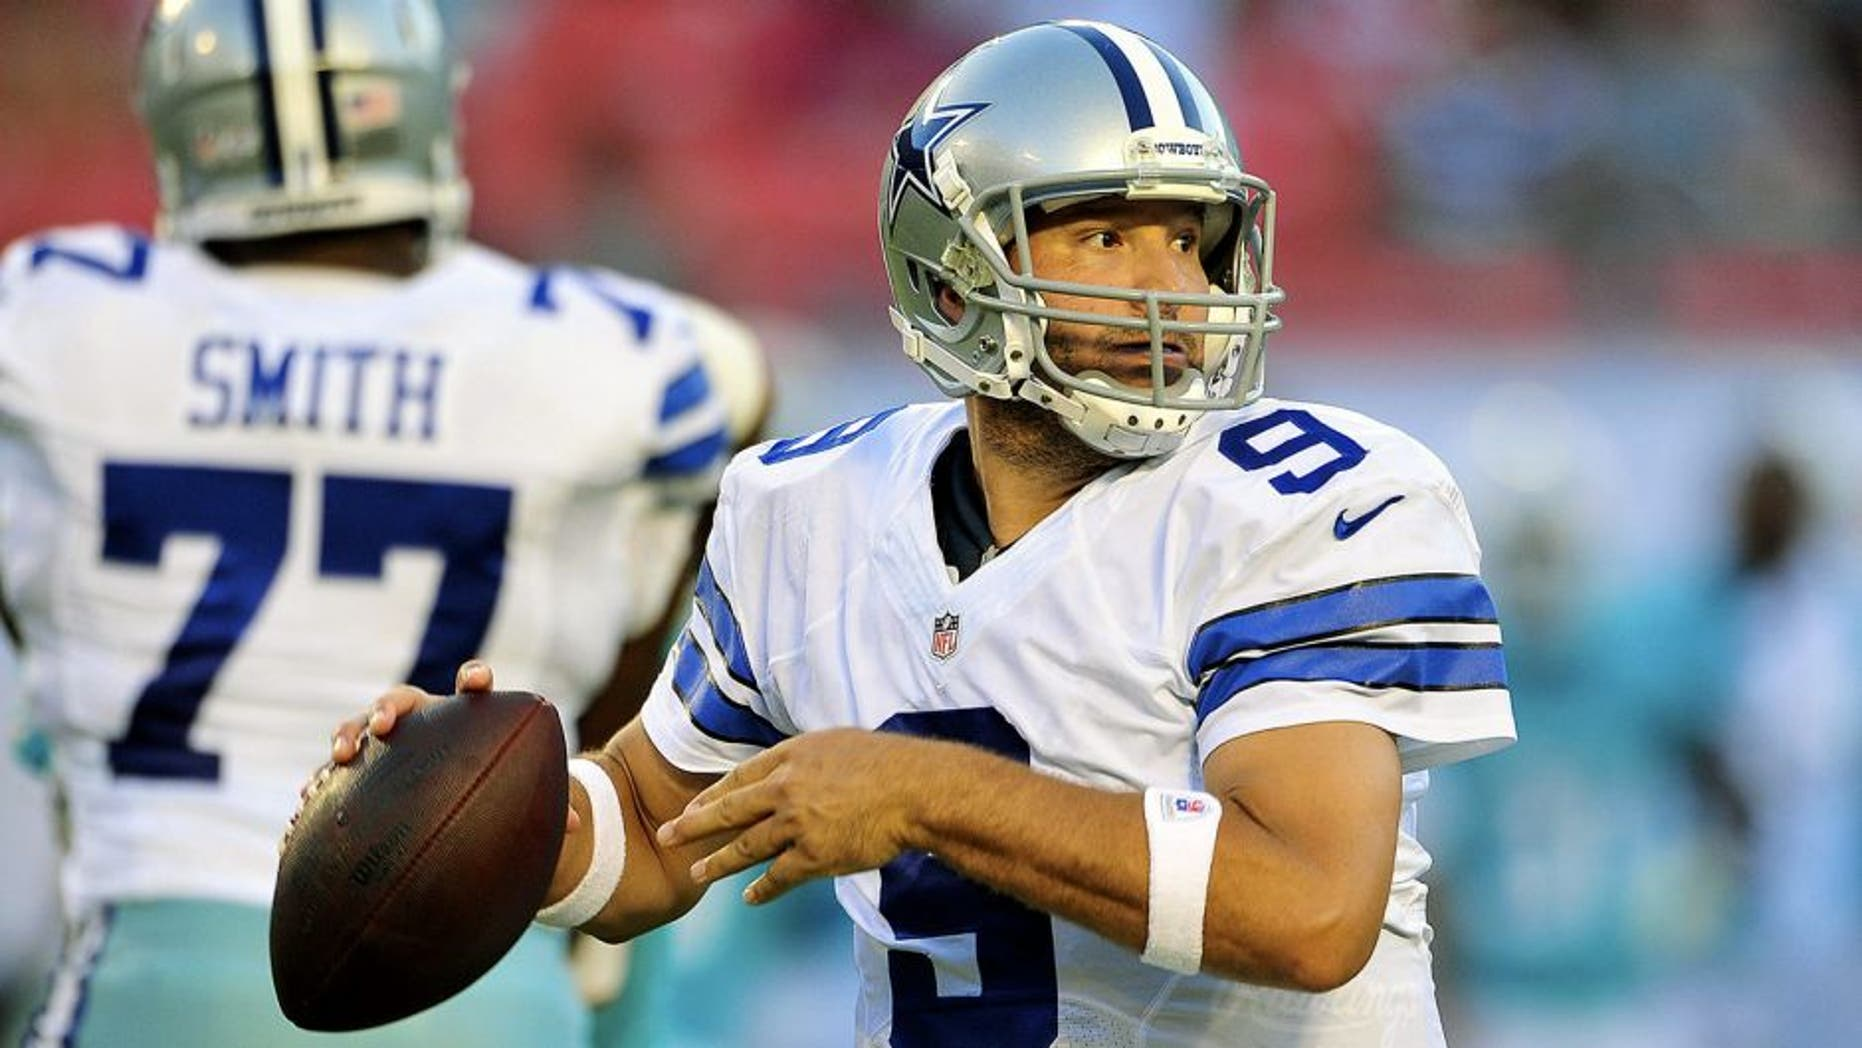 MIAMI GARDENS, FL - AUGUST 23: Quarterback Tony Romo #9 of the Dallas Cowboys looks for a receiver during a preseason game against the Miami Dolphins at Sun Life Stadium on August 23, 2014 in Miami Gardens, Florida. (Photo by Ronald C. Modra/Sports Imagery/ Getty Images)